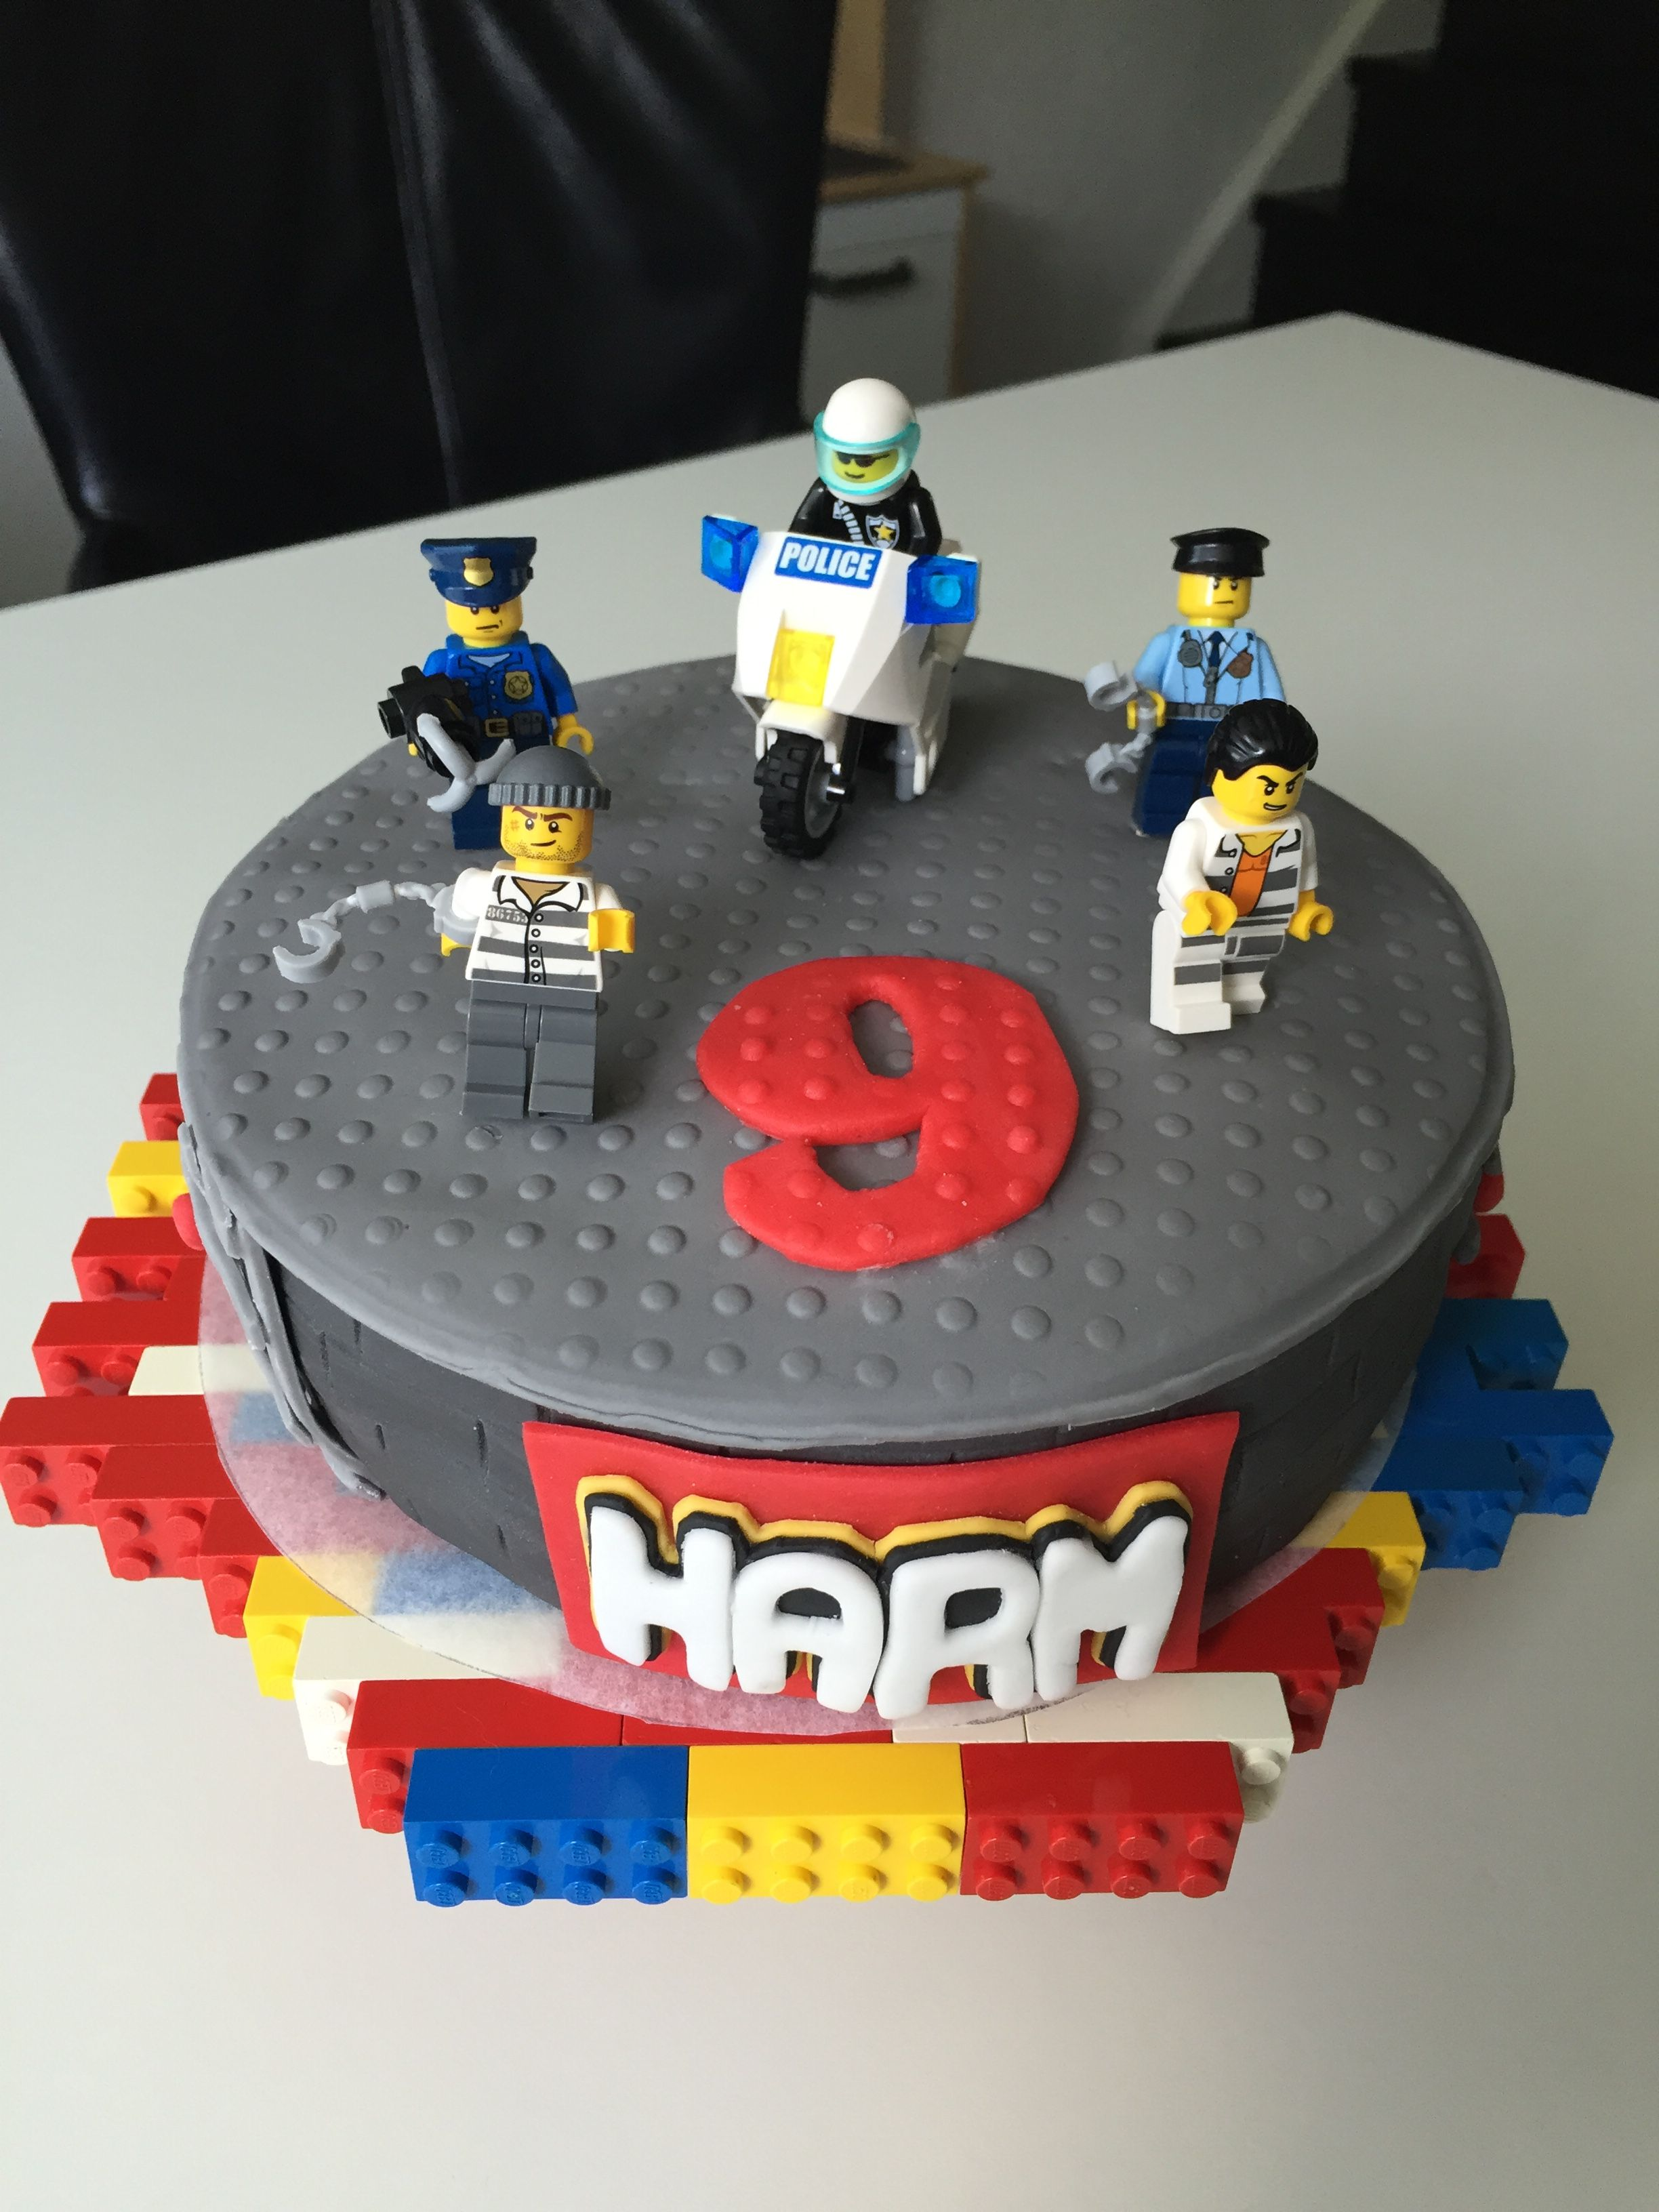 Lego City With Images Police Birthday Cakes Lego City Cakes